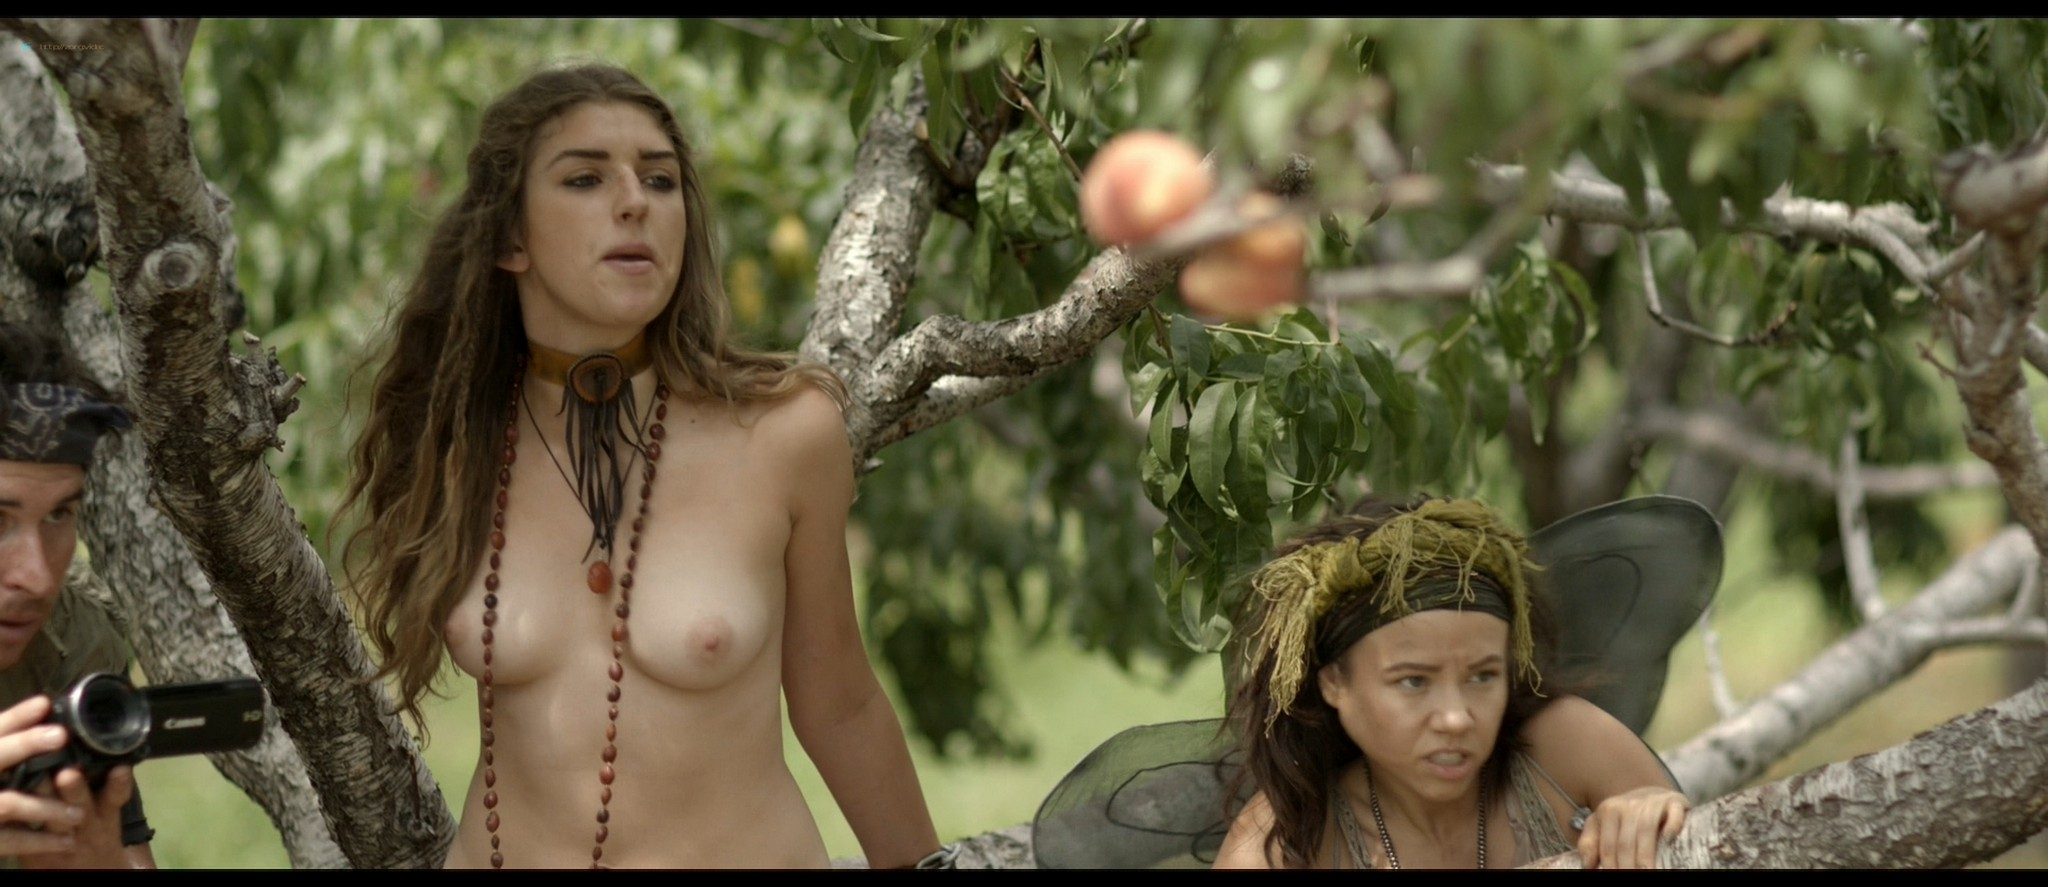 Morgan Taylor Campbell nude full frontal Brandi Alexander sexy - The Orchard (2016) HD 1080p Web (15)